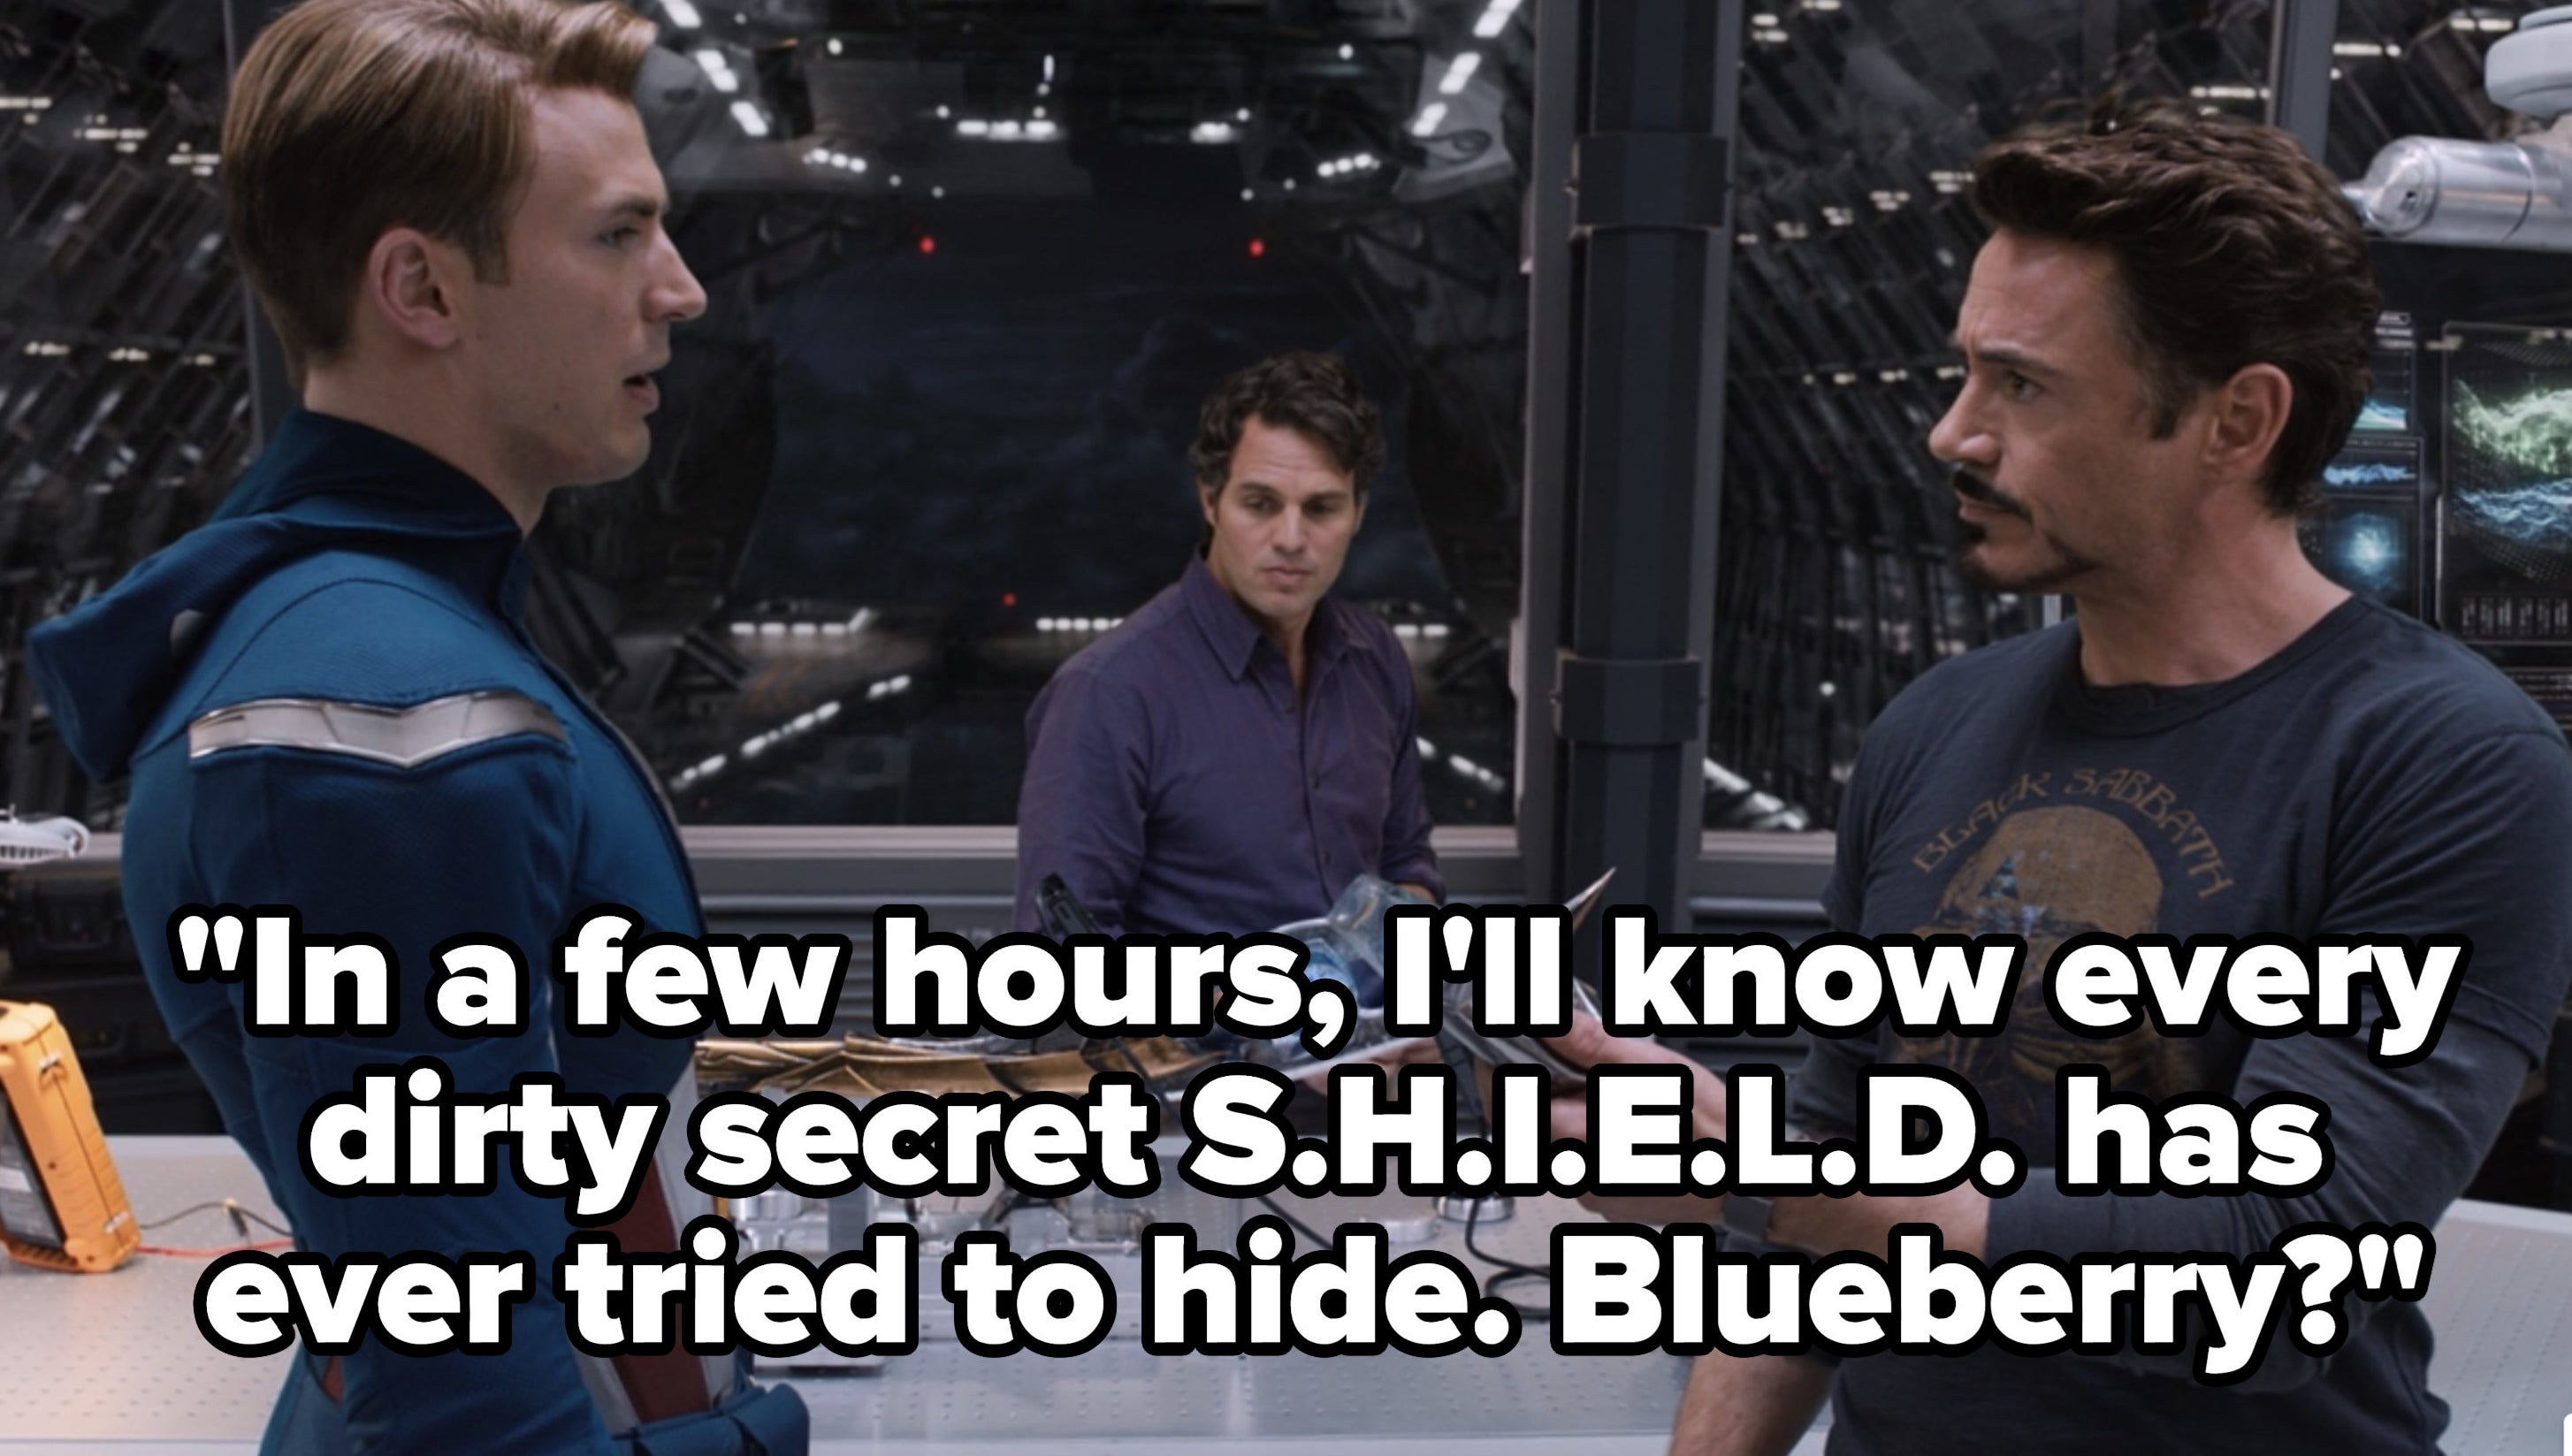 "Tony says ""In a few hours, I'll know every dirty secret S.H.I.E.L.D. has ever tried to hide. Blueberry?"" to Steve"